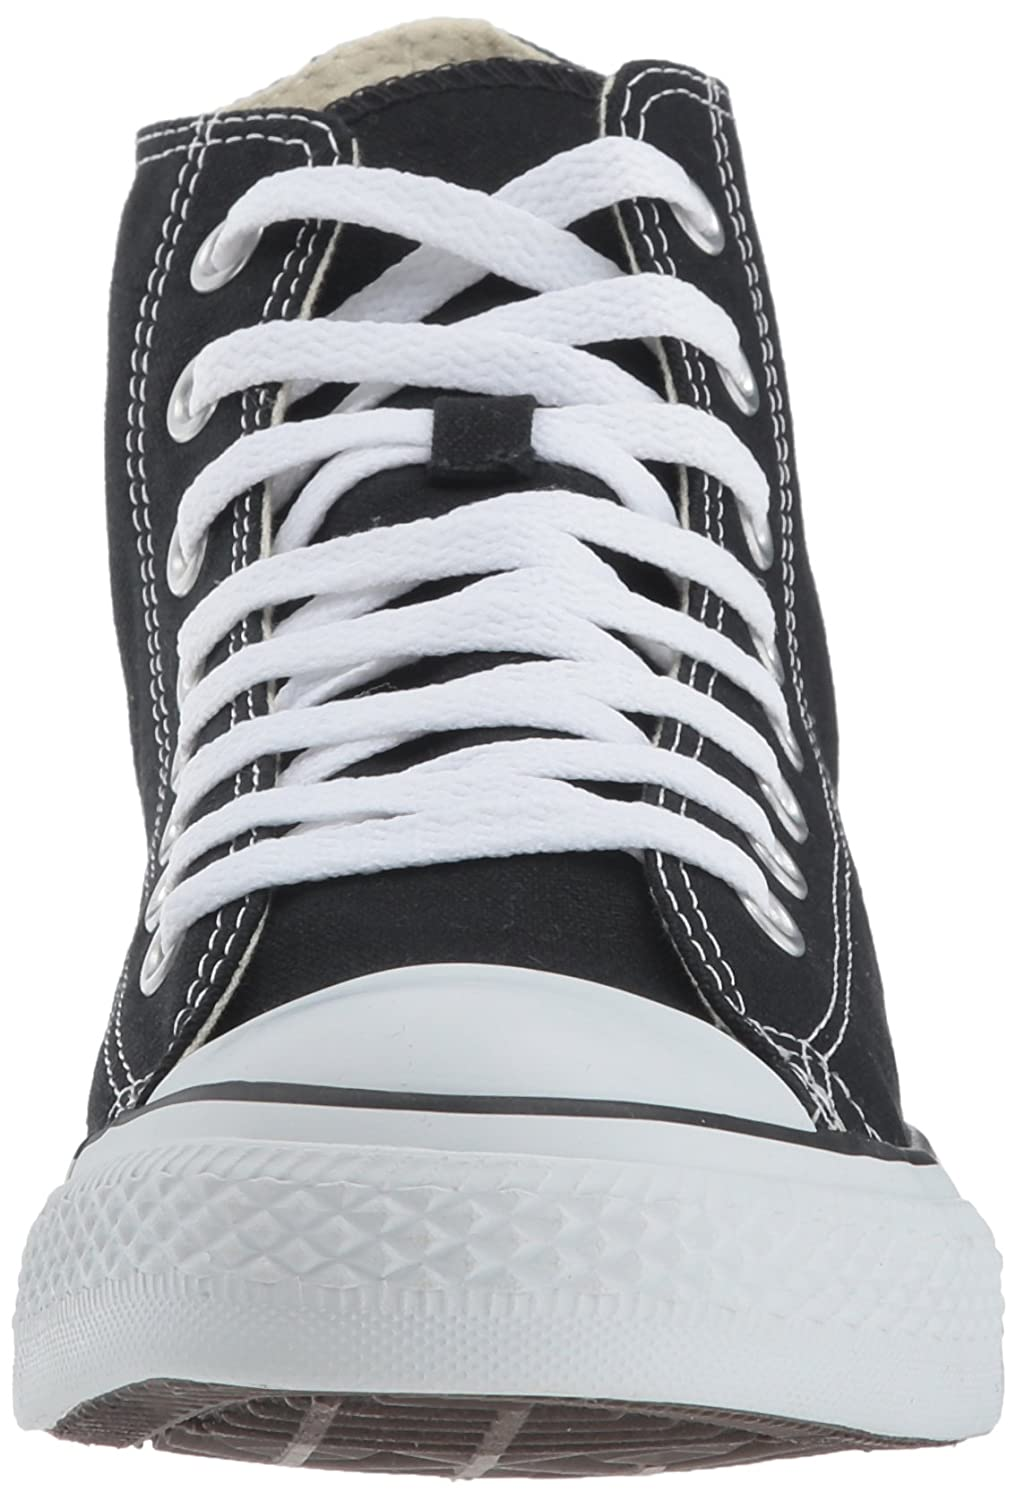 Converse Unisex Chuck Taylor All-Star High-Top Casual Sneakers Color in Classic Style and Color Sneakers and Durable Canvas Uppers B076CTSZX4 10.5 D(M) US / 12.5 B(M) US / 44-45 EUR|Black 905d15